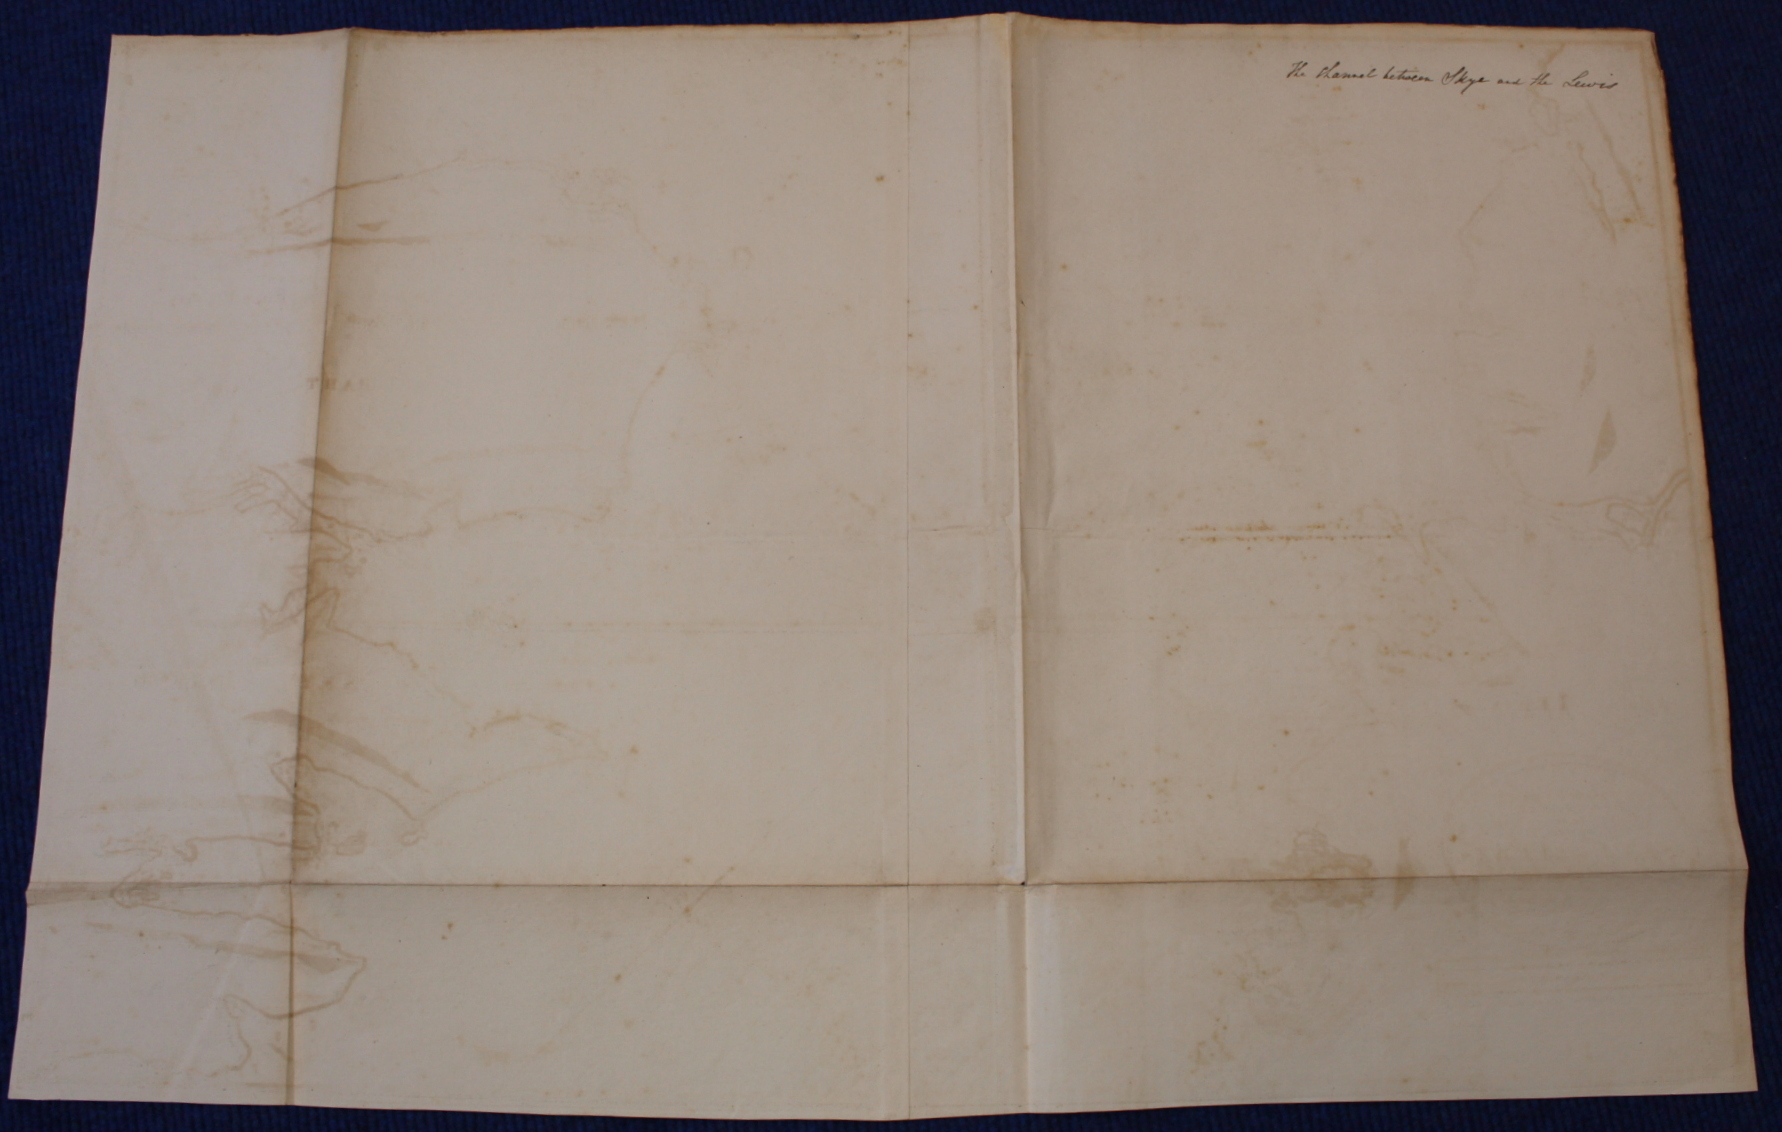 MACKENZIE MURDOCH (SNR.).A General Chart of the West Coast & Western Islands of Scotland from - Image 44 of 66